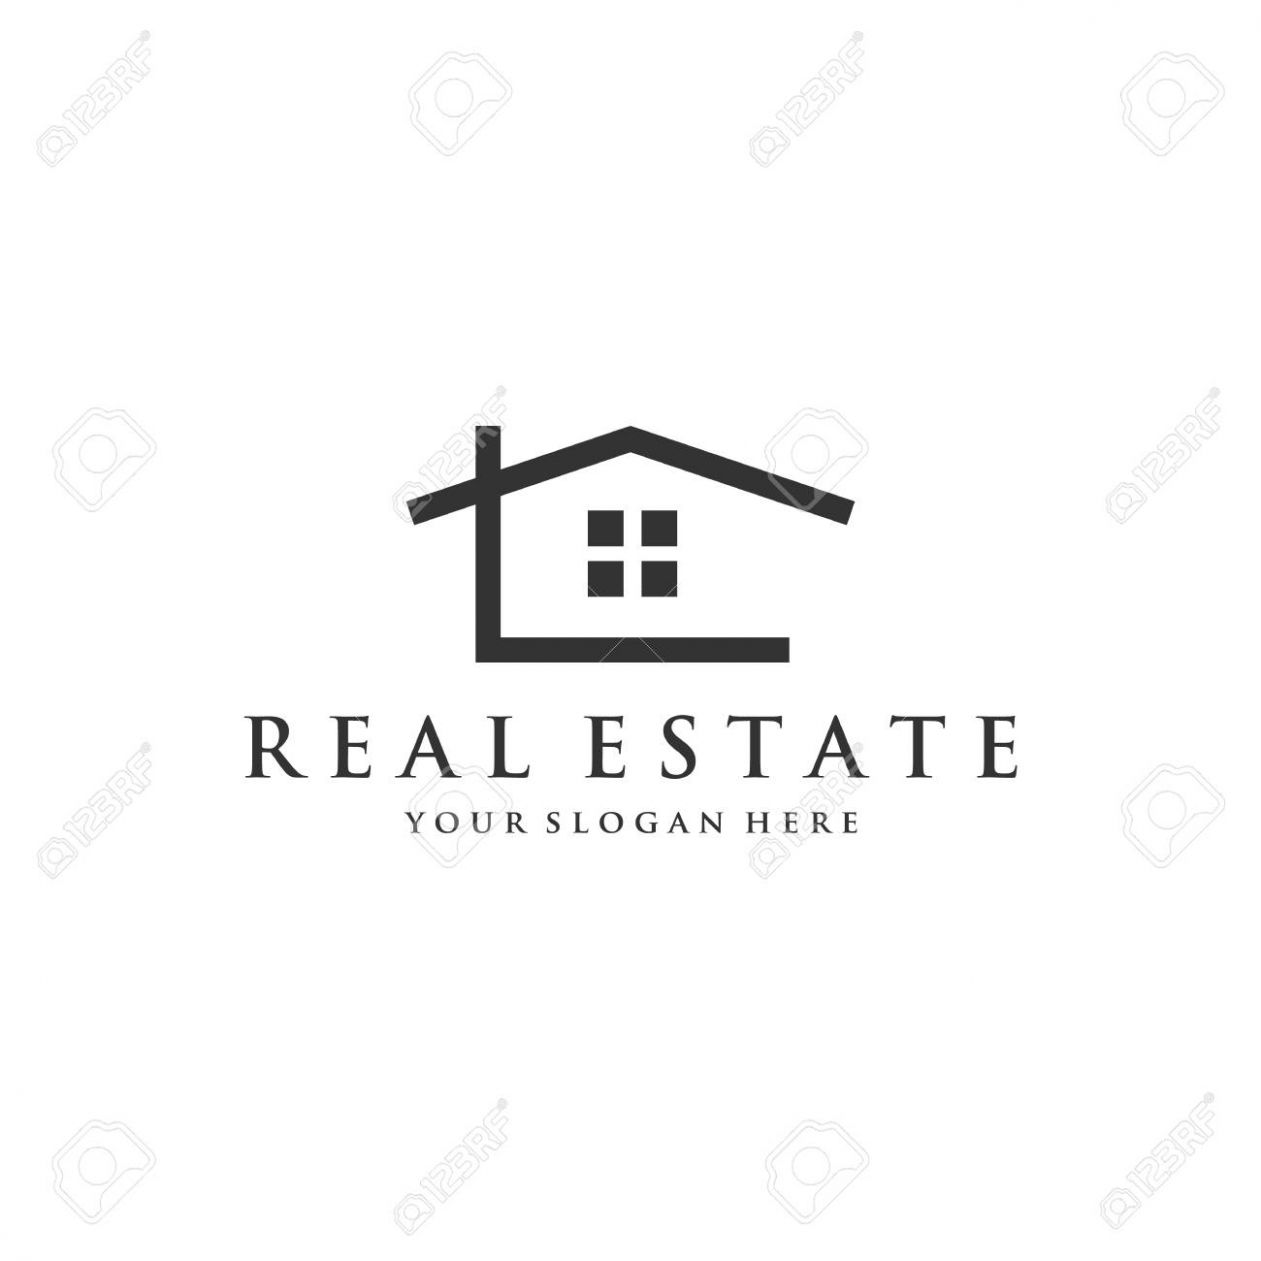 minimalist house logo inspirations for real estate company - house logo inspiration